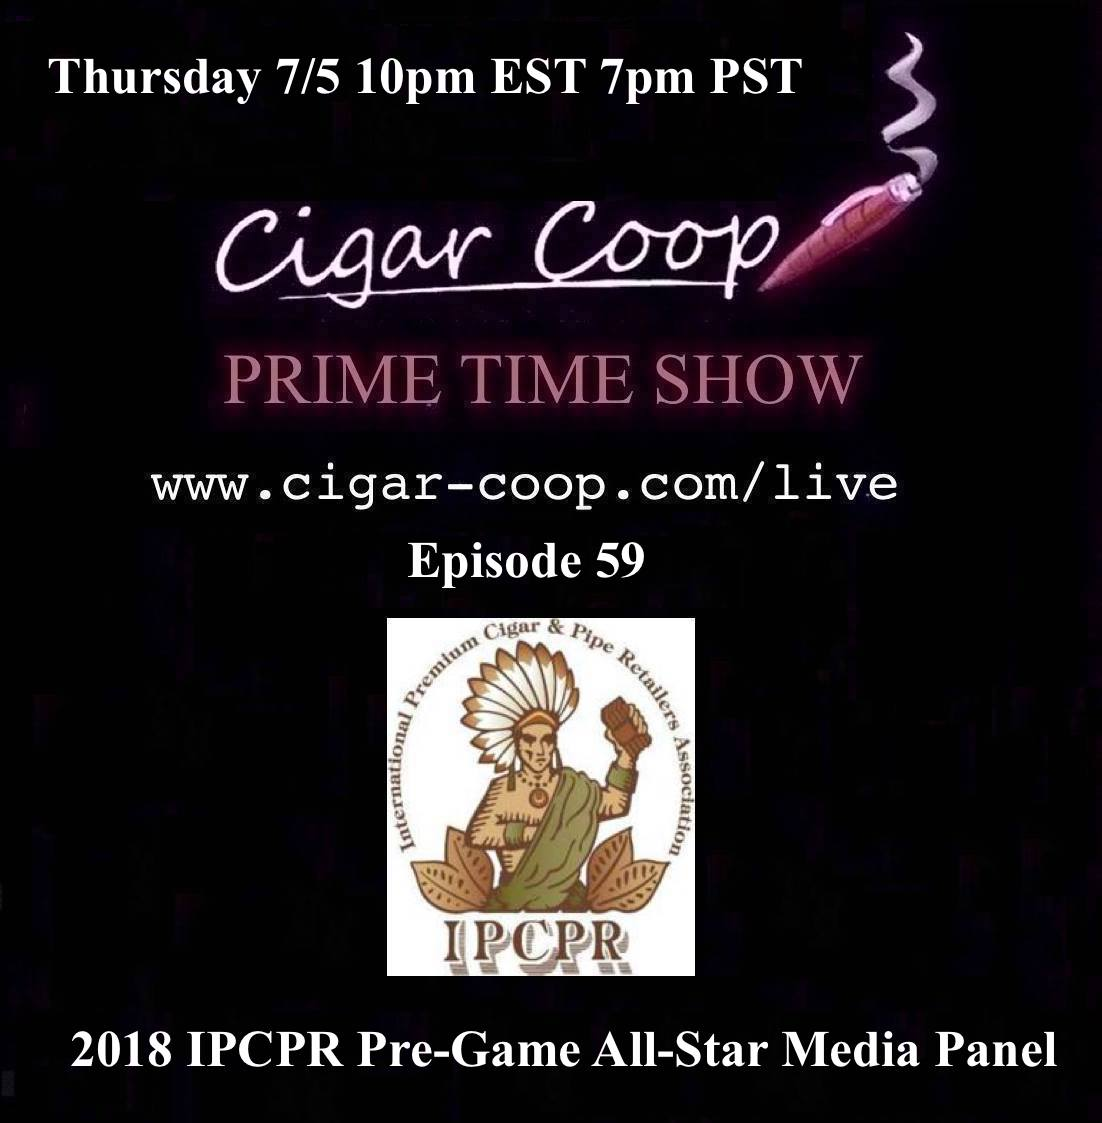 Announcement: Prime Time Show Episode 59 – The 2018 IPCPR Prime Time Pre-Game All Star Media Panel 10pm EST, 7pm PST